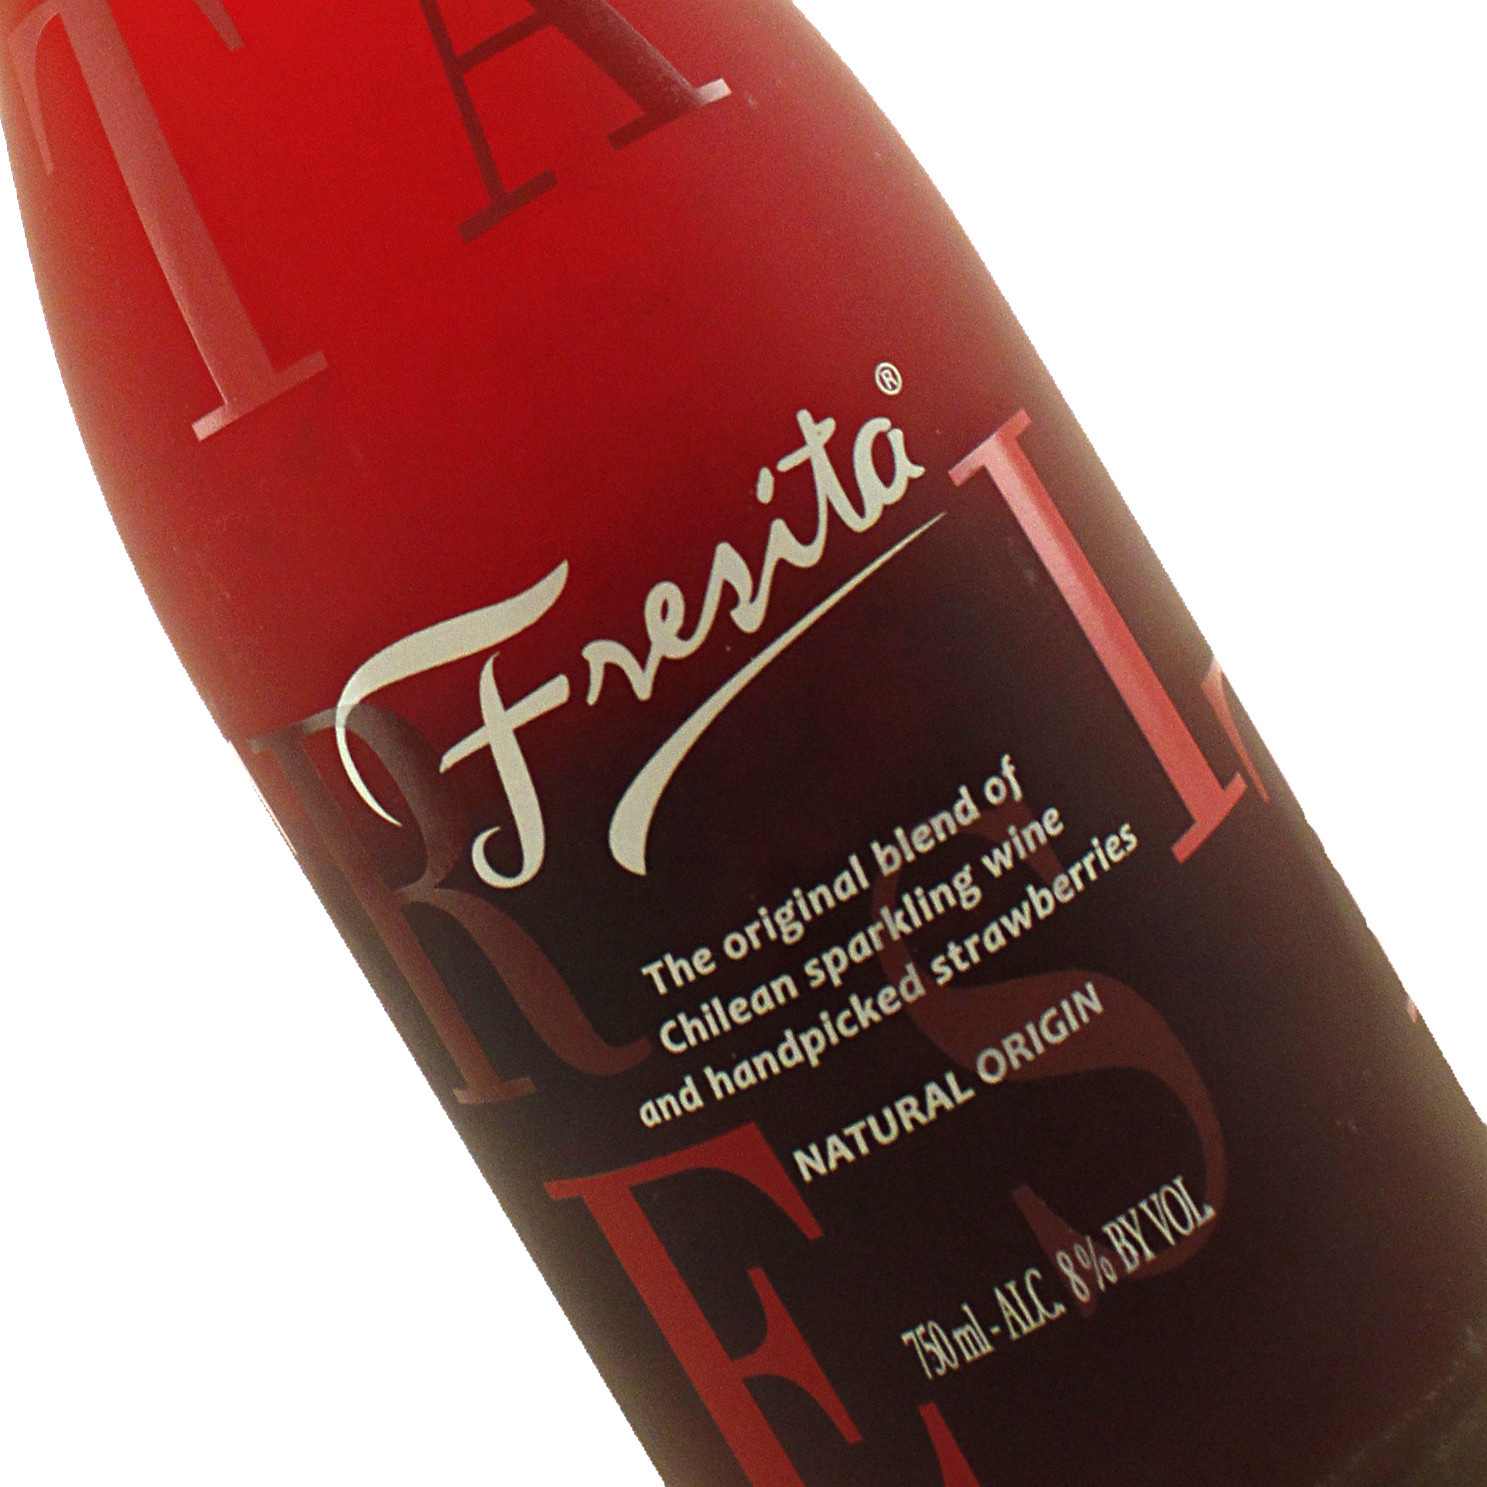 Fresita Sparkling Wine Infused with Patagonian Strawberries, Chile